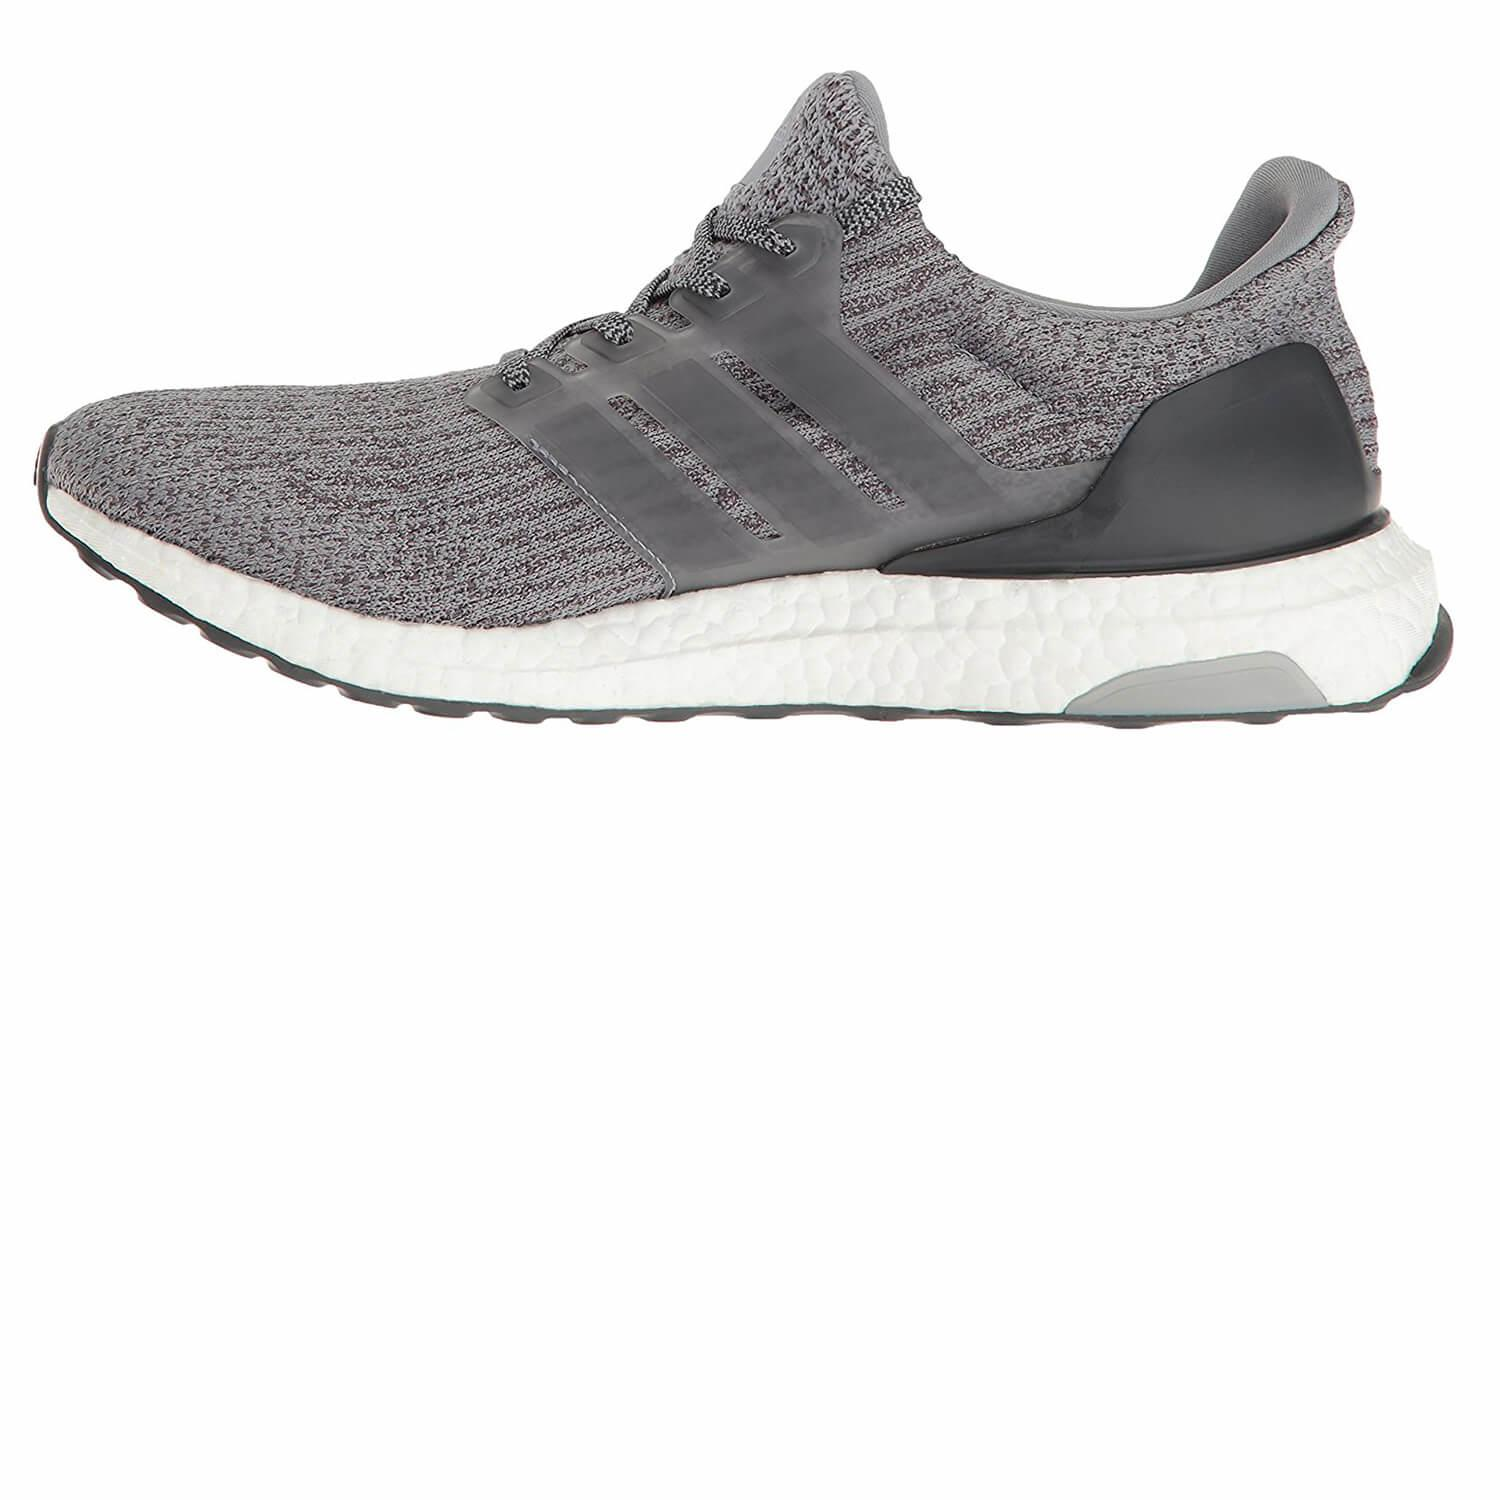 Adidas Ultra Boost. New Shoe Giveaway!